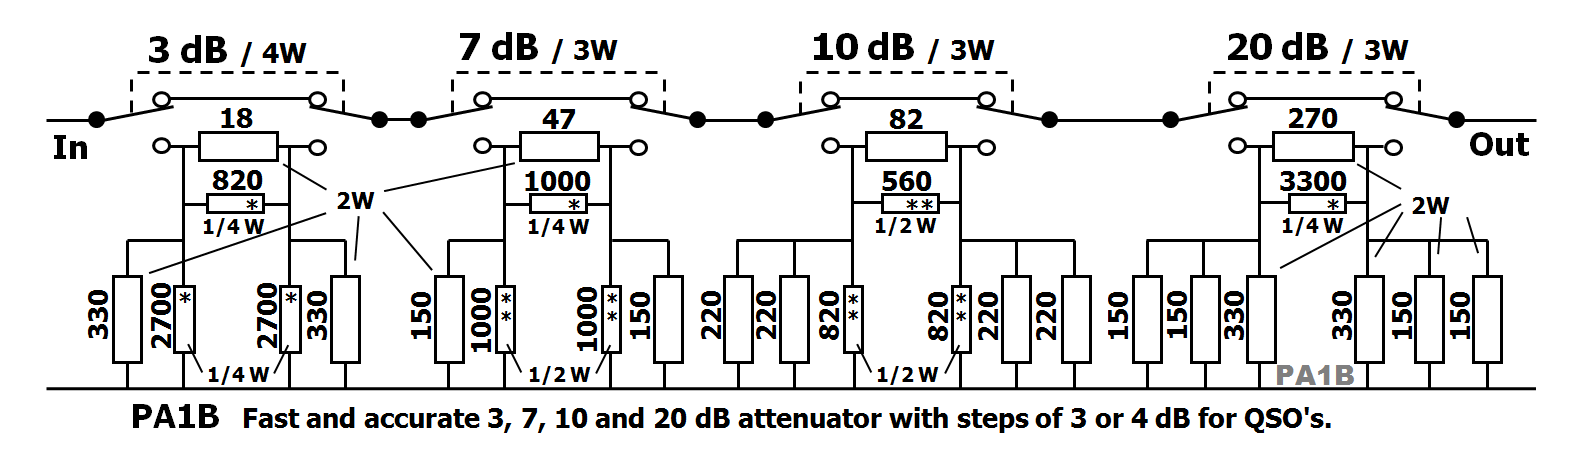 PA1B Accurate and fast 40 dB attenuator